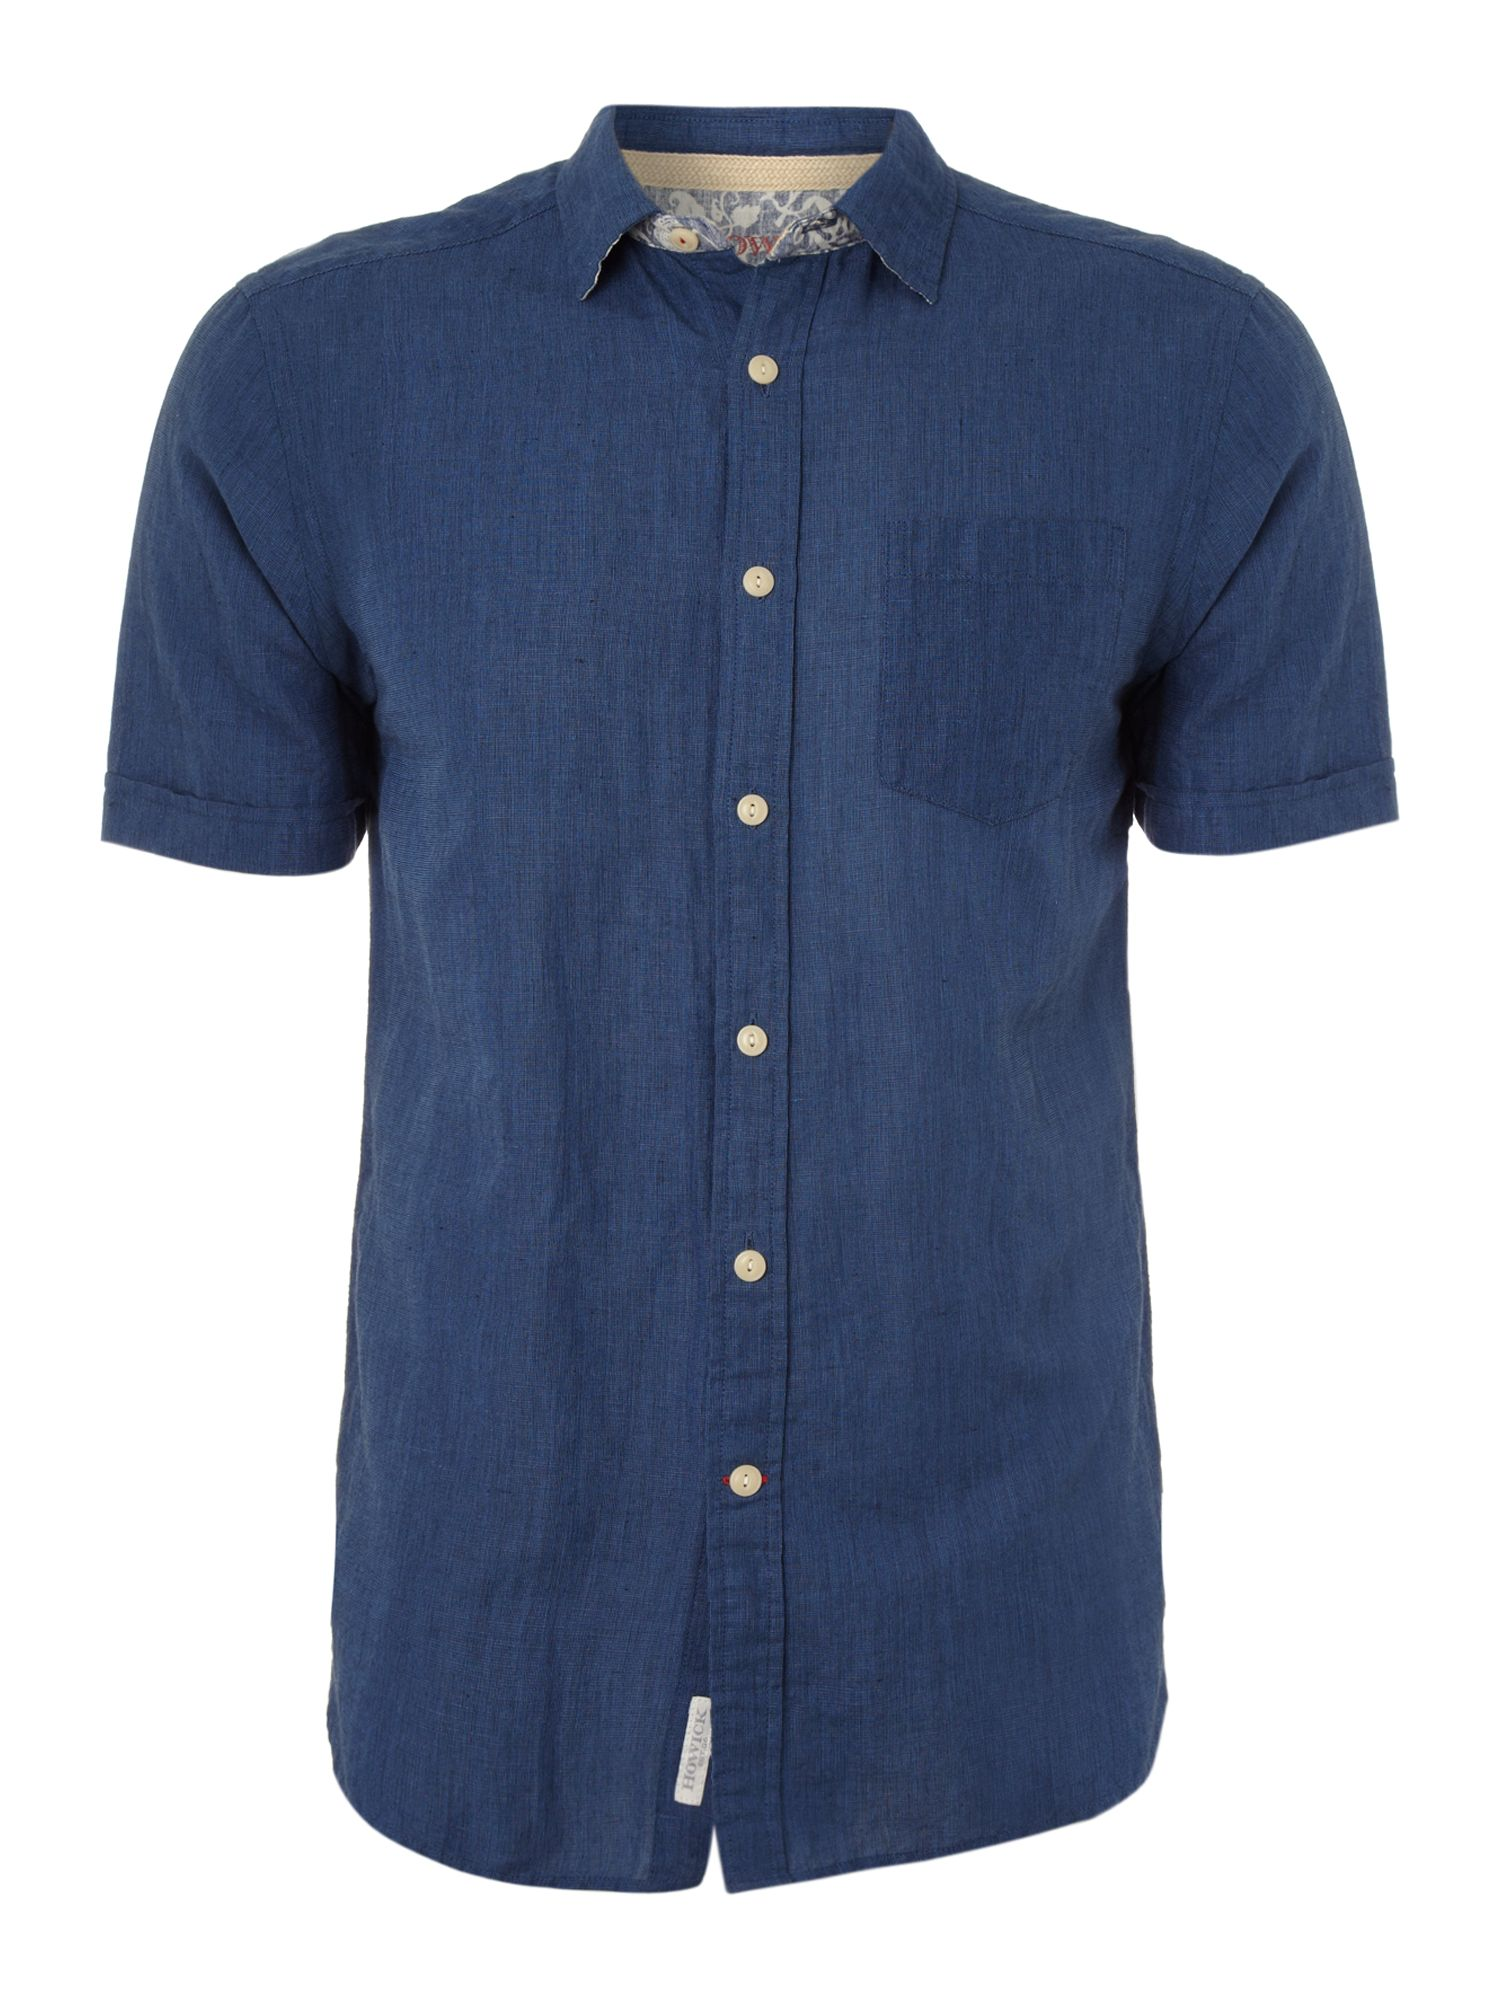 Short sleeved button down linen shirt